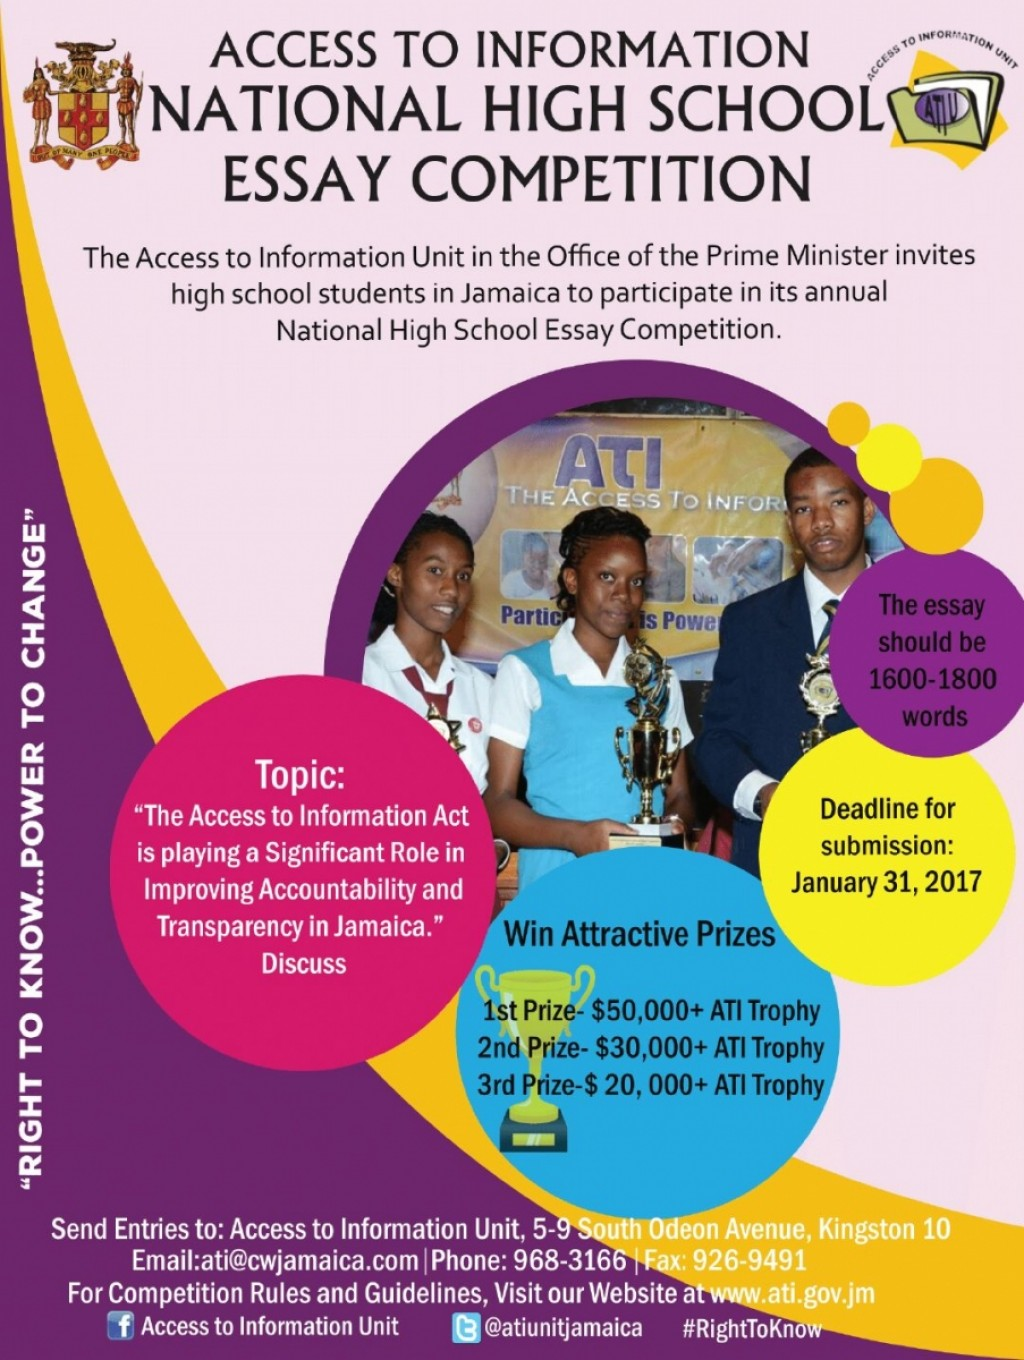 005 Deadline Ati Essay Competition Youth Information Centers Ncyd Contests For Highhool Students April Middle Competitions International Writinghoolers Example Staggering High School 2017 Large